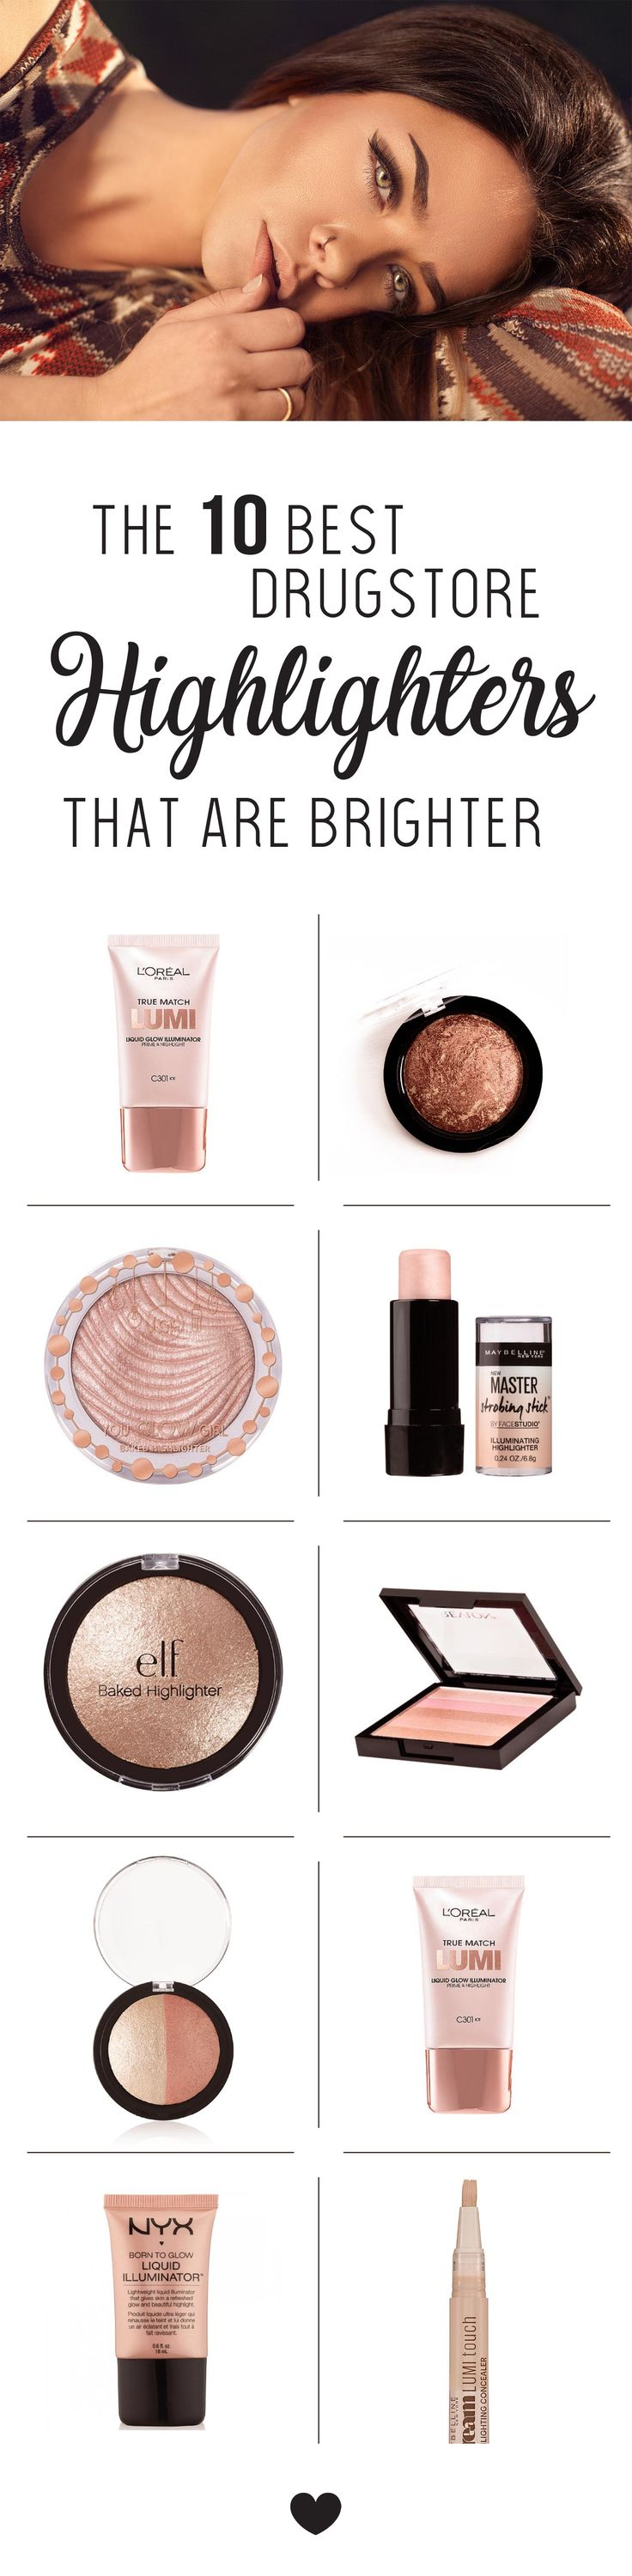 The 10 Best Drugstore Highlighters That Are Brighter Than Our Futures